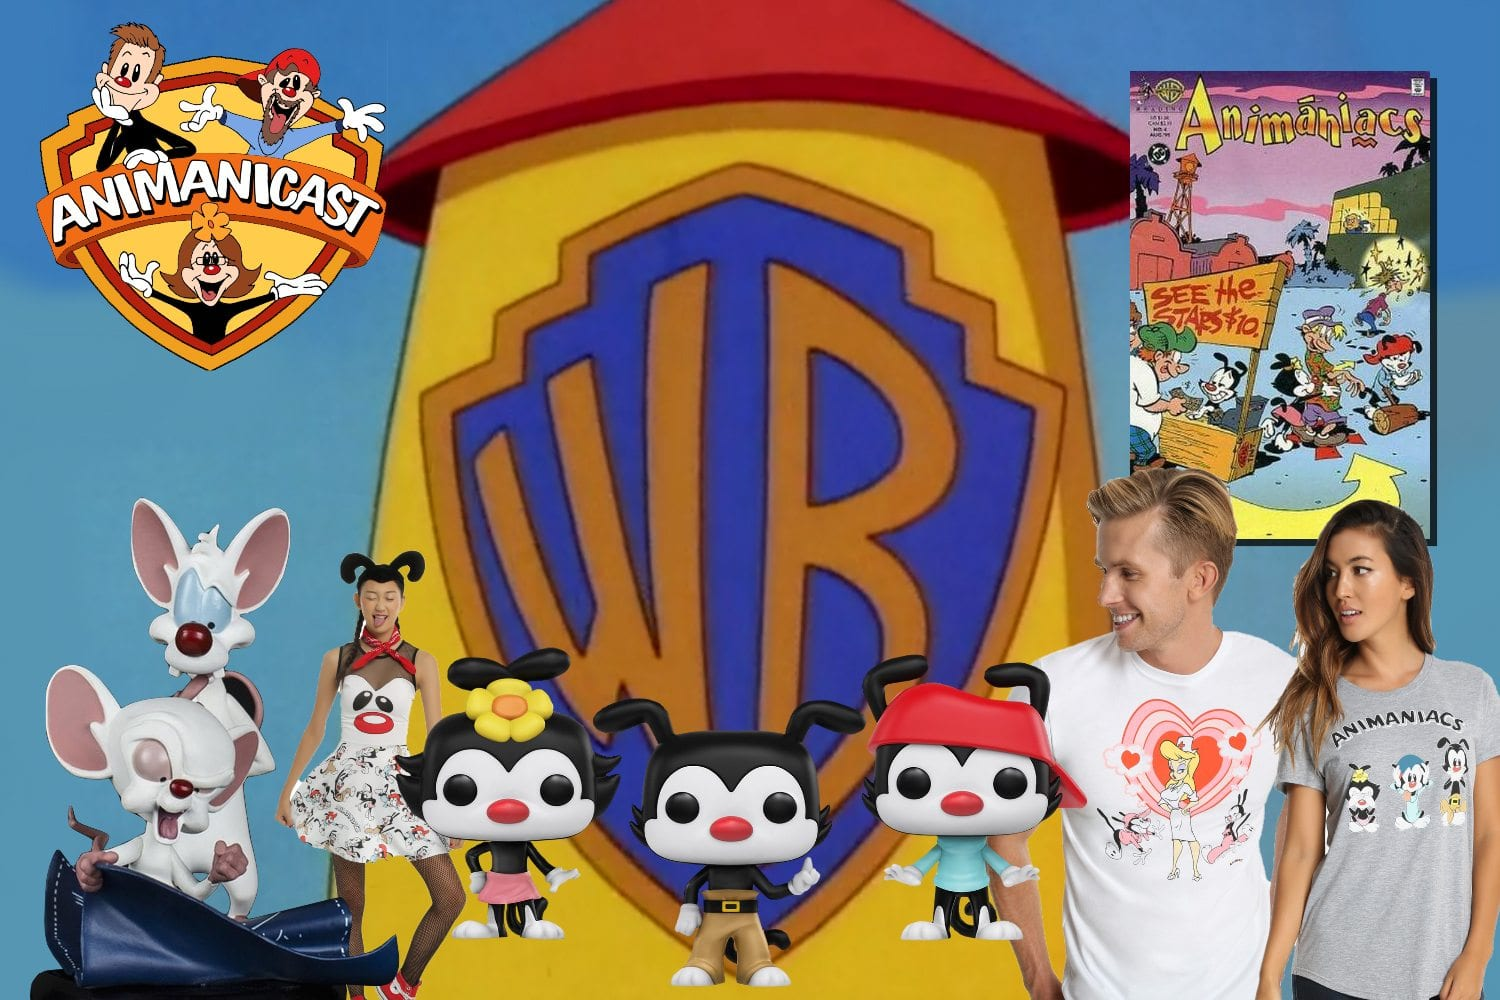 Animanicast #72a: New Animaniacs Merchandise and a Review of Animaniacs Issue #4